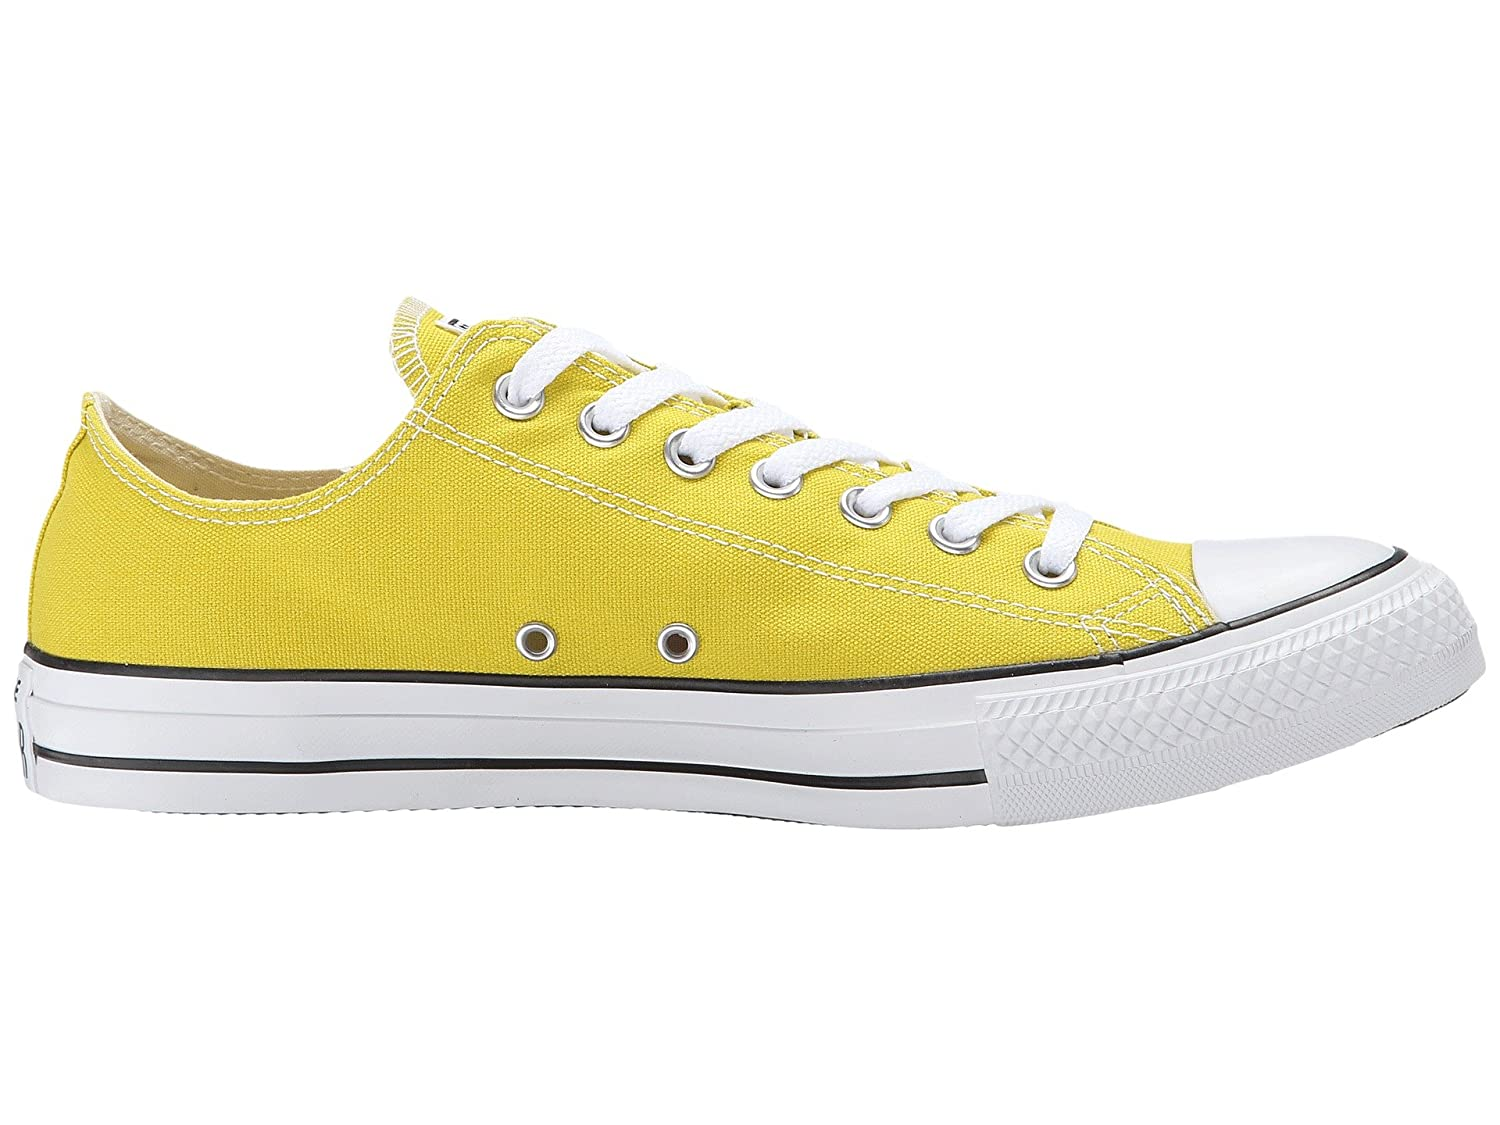 6de8ecf47608 Converse Unisex Chuck Taylor All Star Ox Basketball Shoe Bitter Lemon 4.5  D(M) US  Buy Online at Low Prices in India - Amazon.in